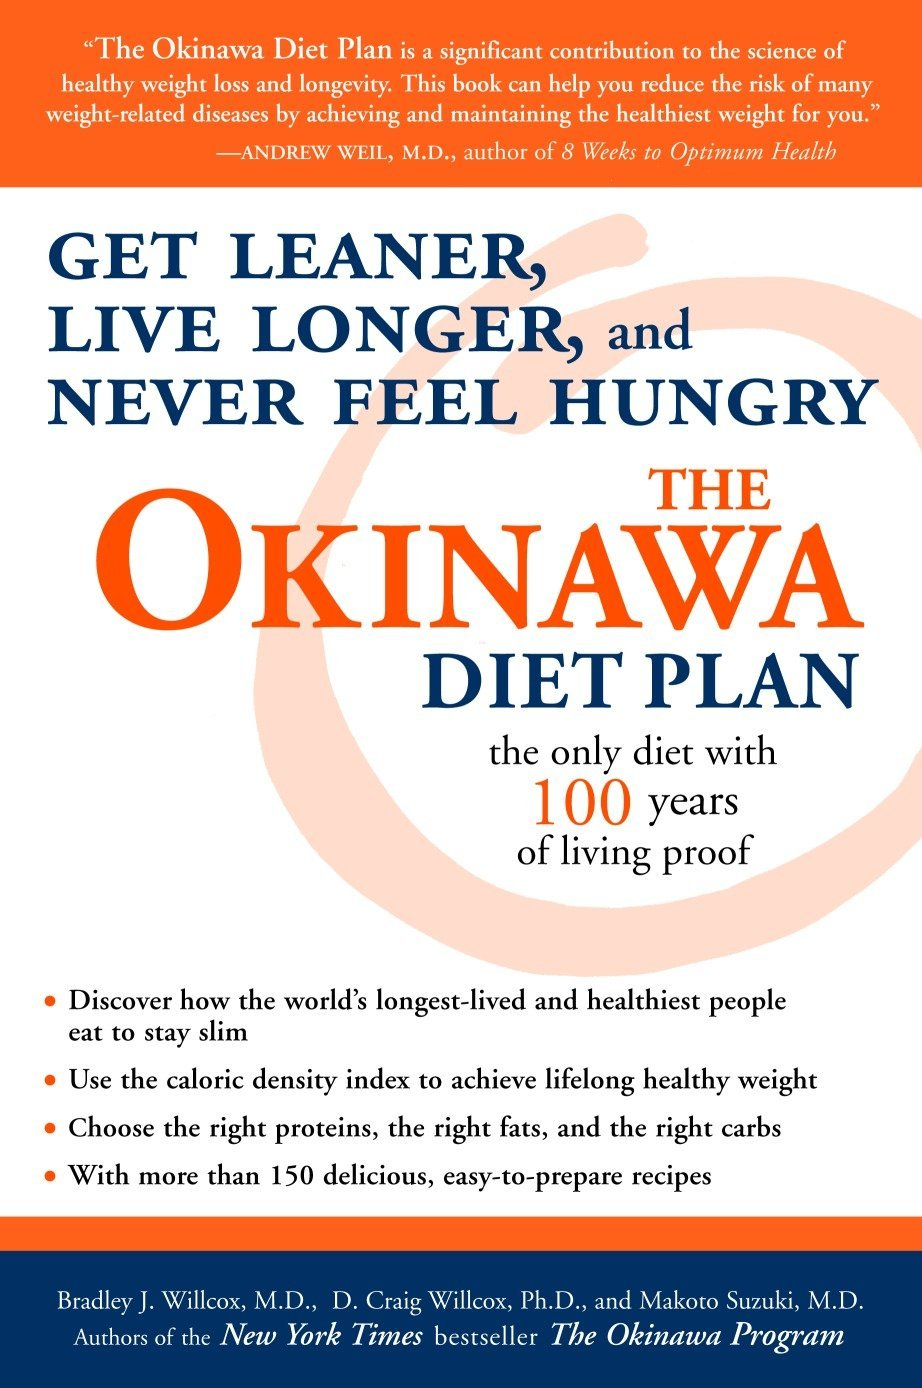 The Okinawa Diet Plan: Get Leaner, Live